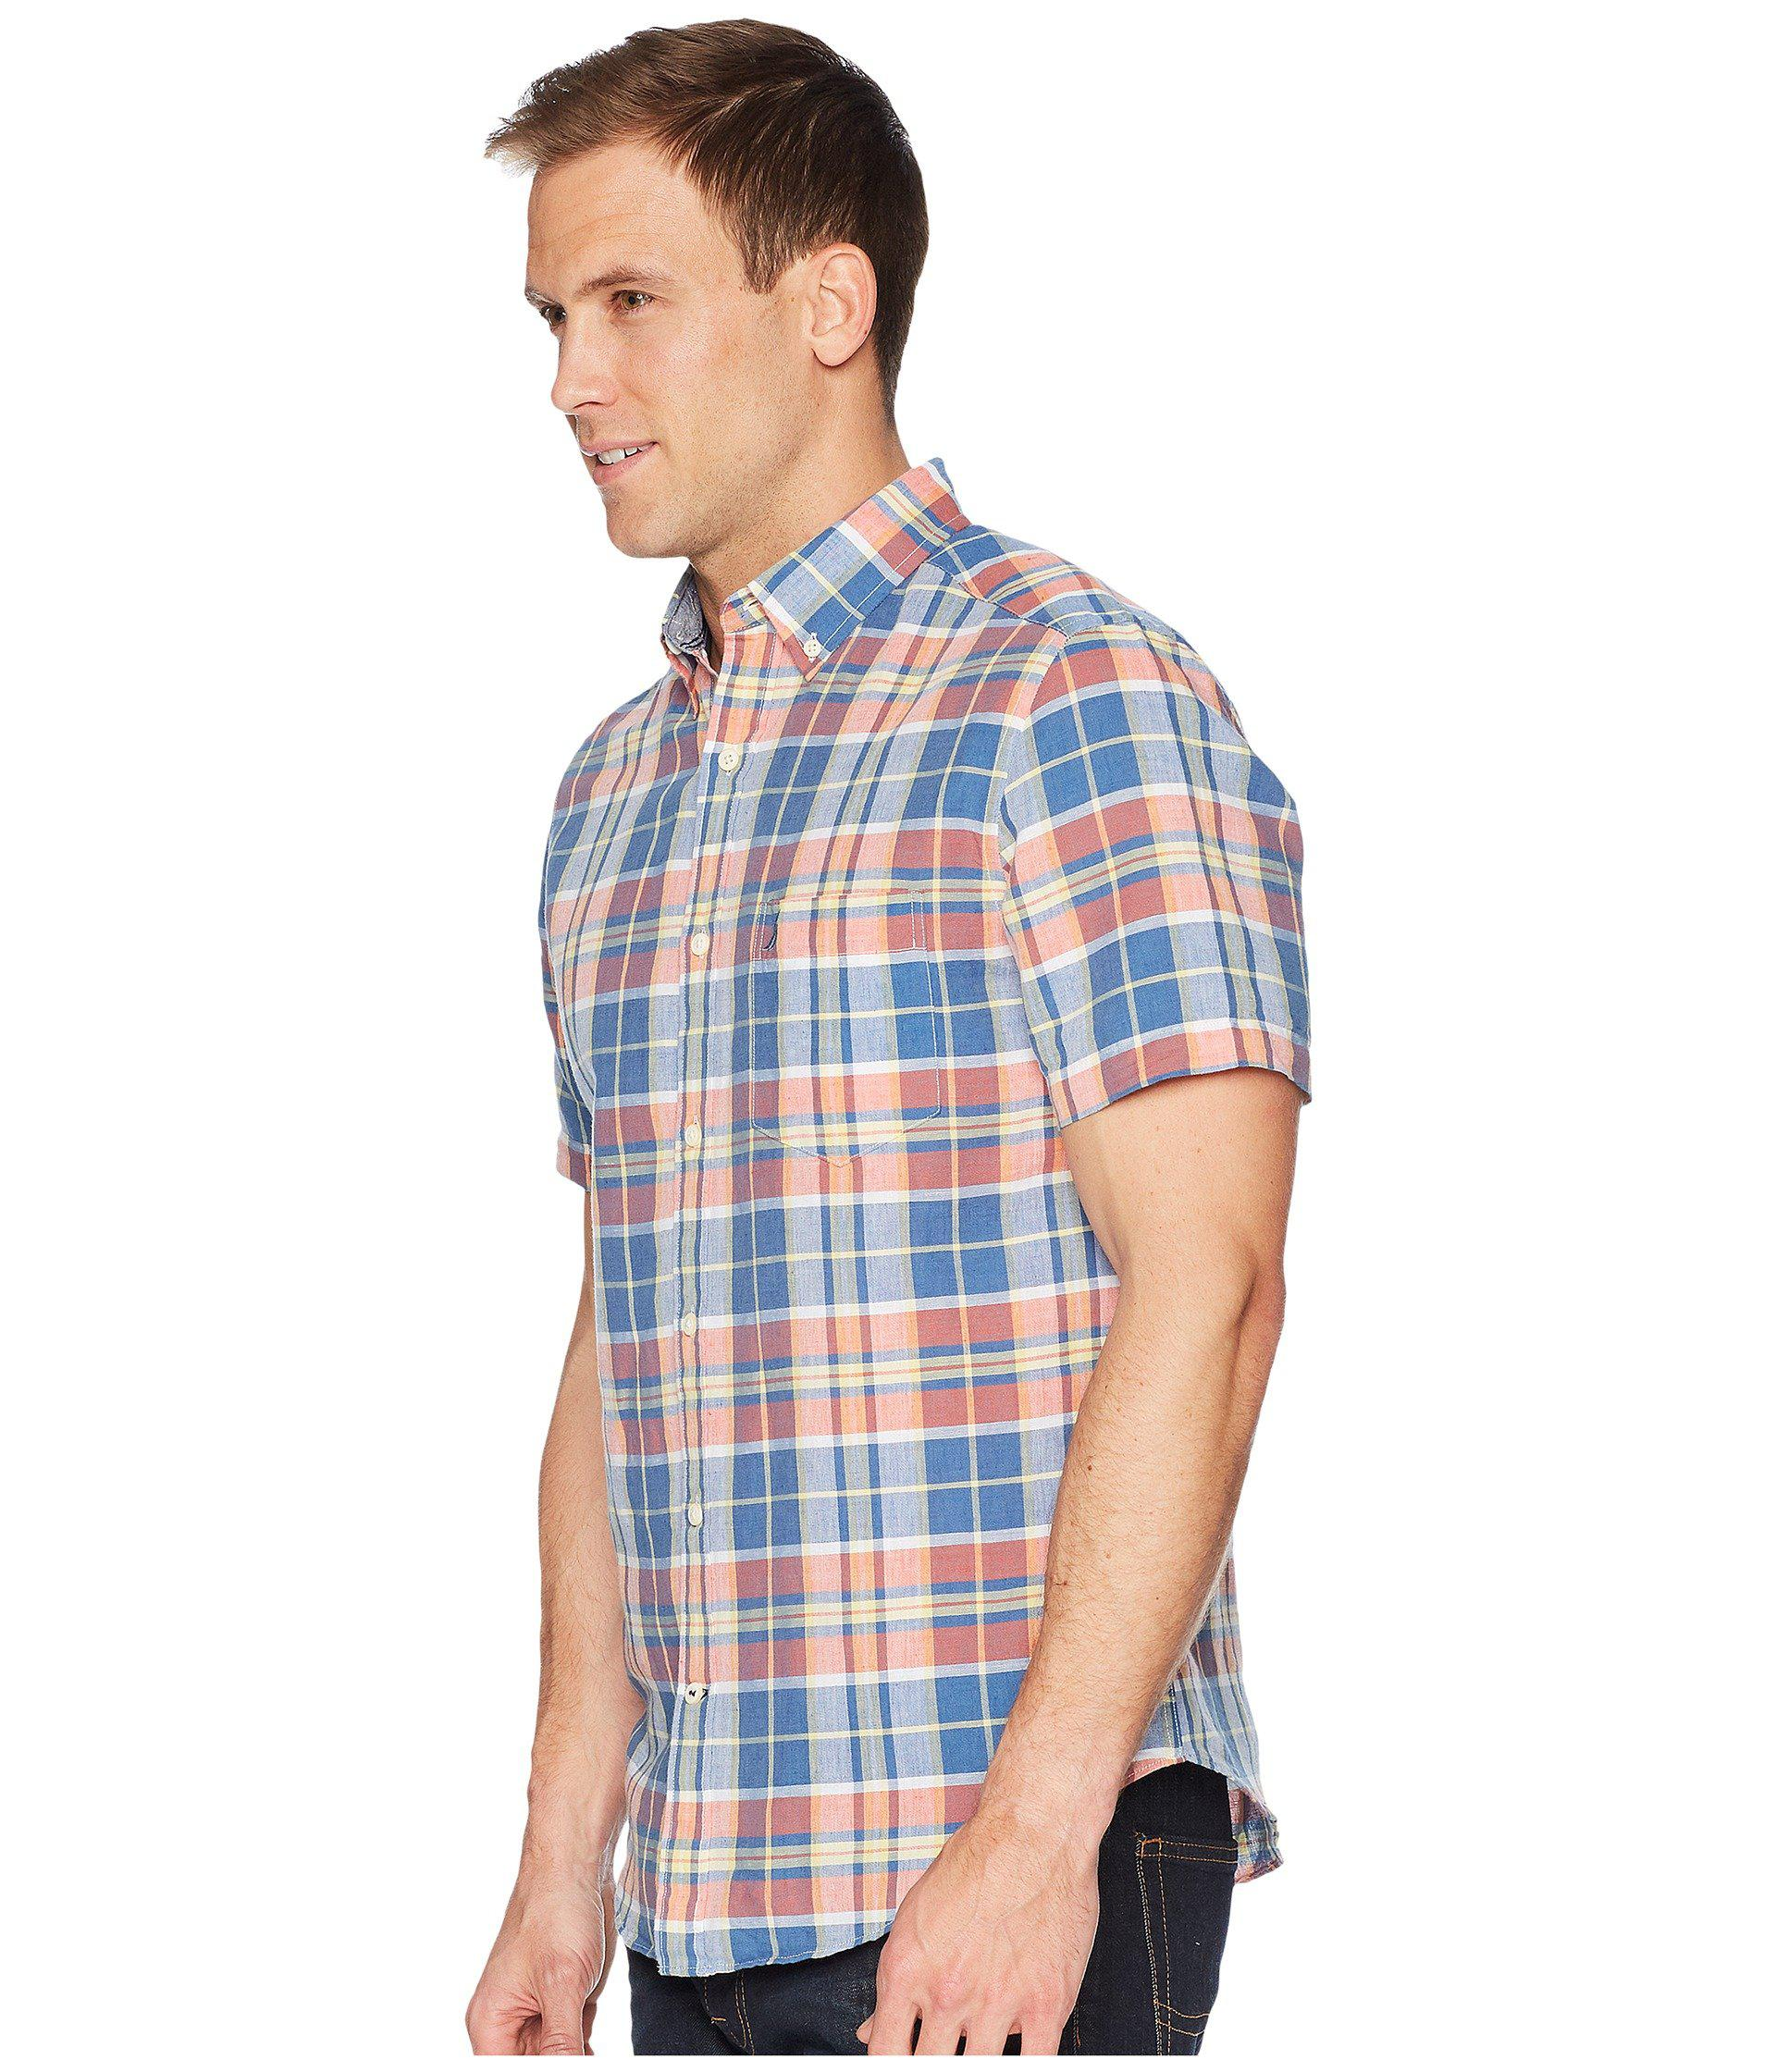 Lyst Nautica Short Sleeve Linen Plaid Shirt In Blue For Men Save